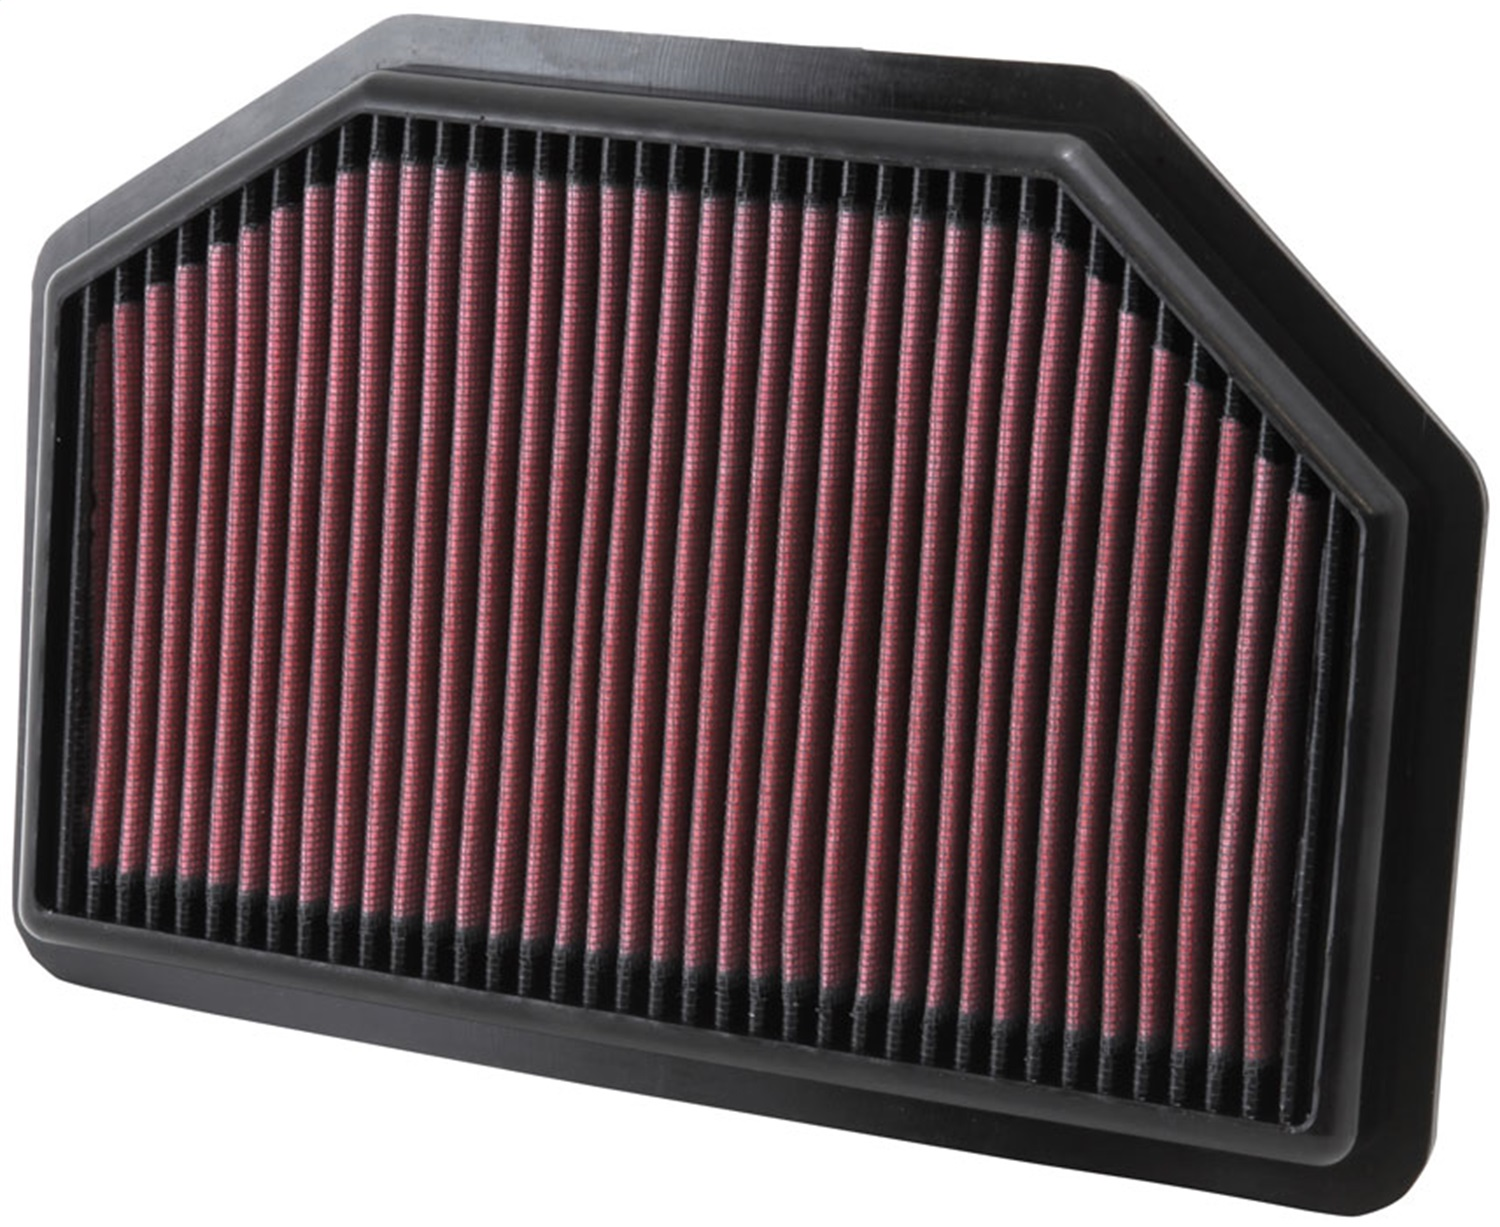 K&N Filters 33-2481 Air Filter Fits 13-15 Genesis Coupe 33-2481